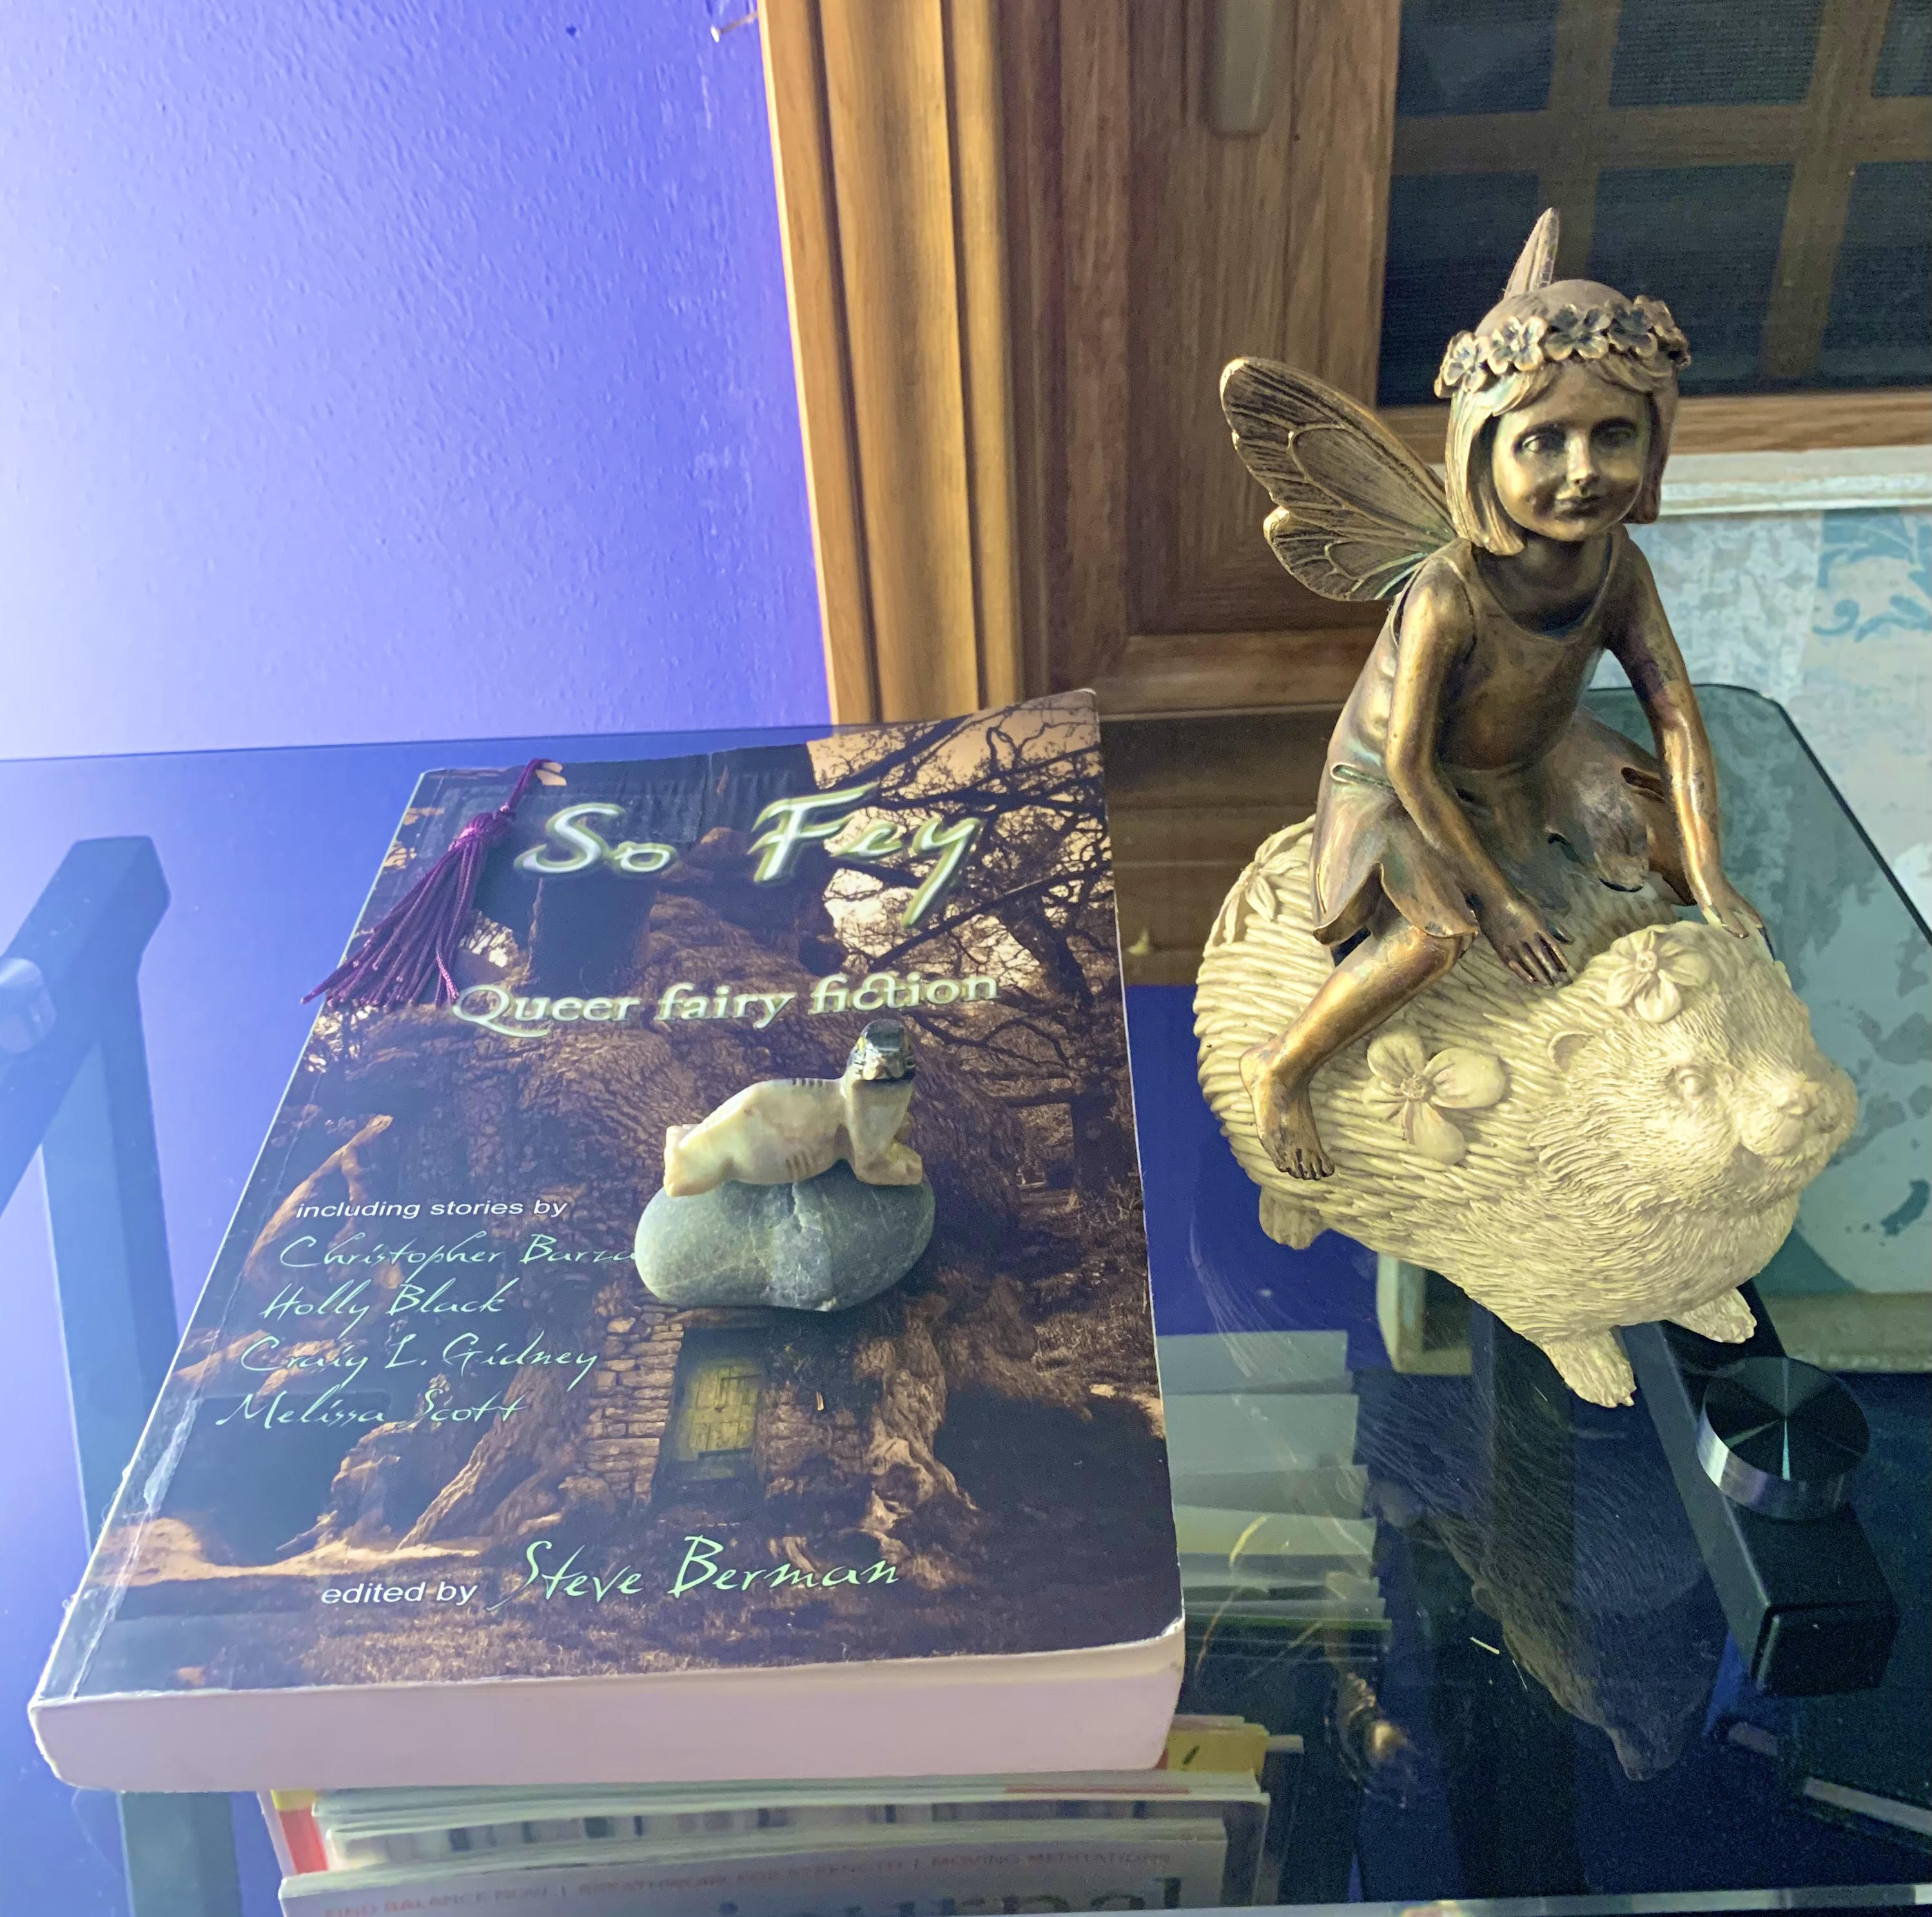 Cover of So Fey: Queer Fairy Fiction, on a glass table.  To the right of the book is a large figurine of a winged fairy child riding a hedgehog covered in flowers.  On top of the book is a small stone with a tiny seal figurine on top.